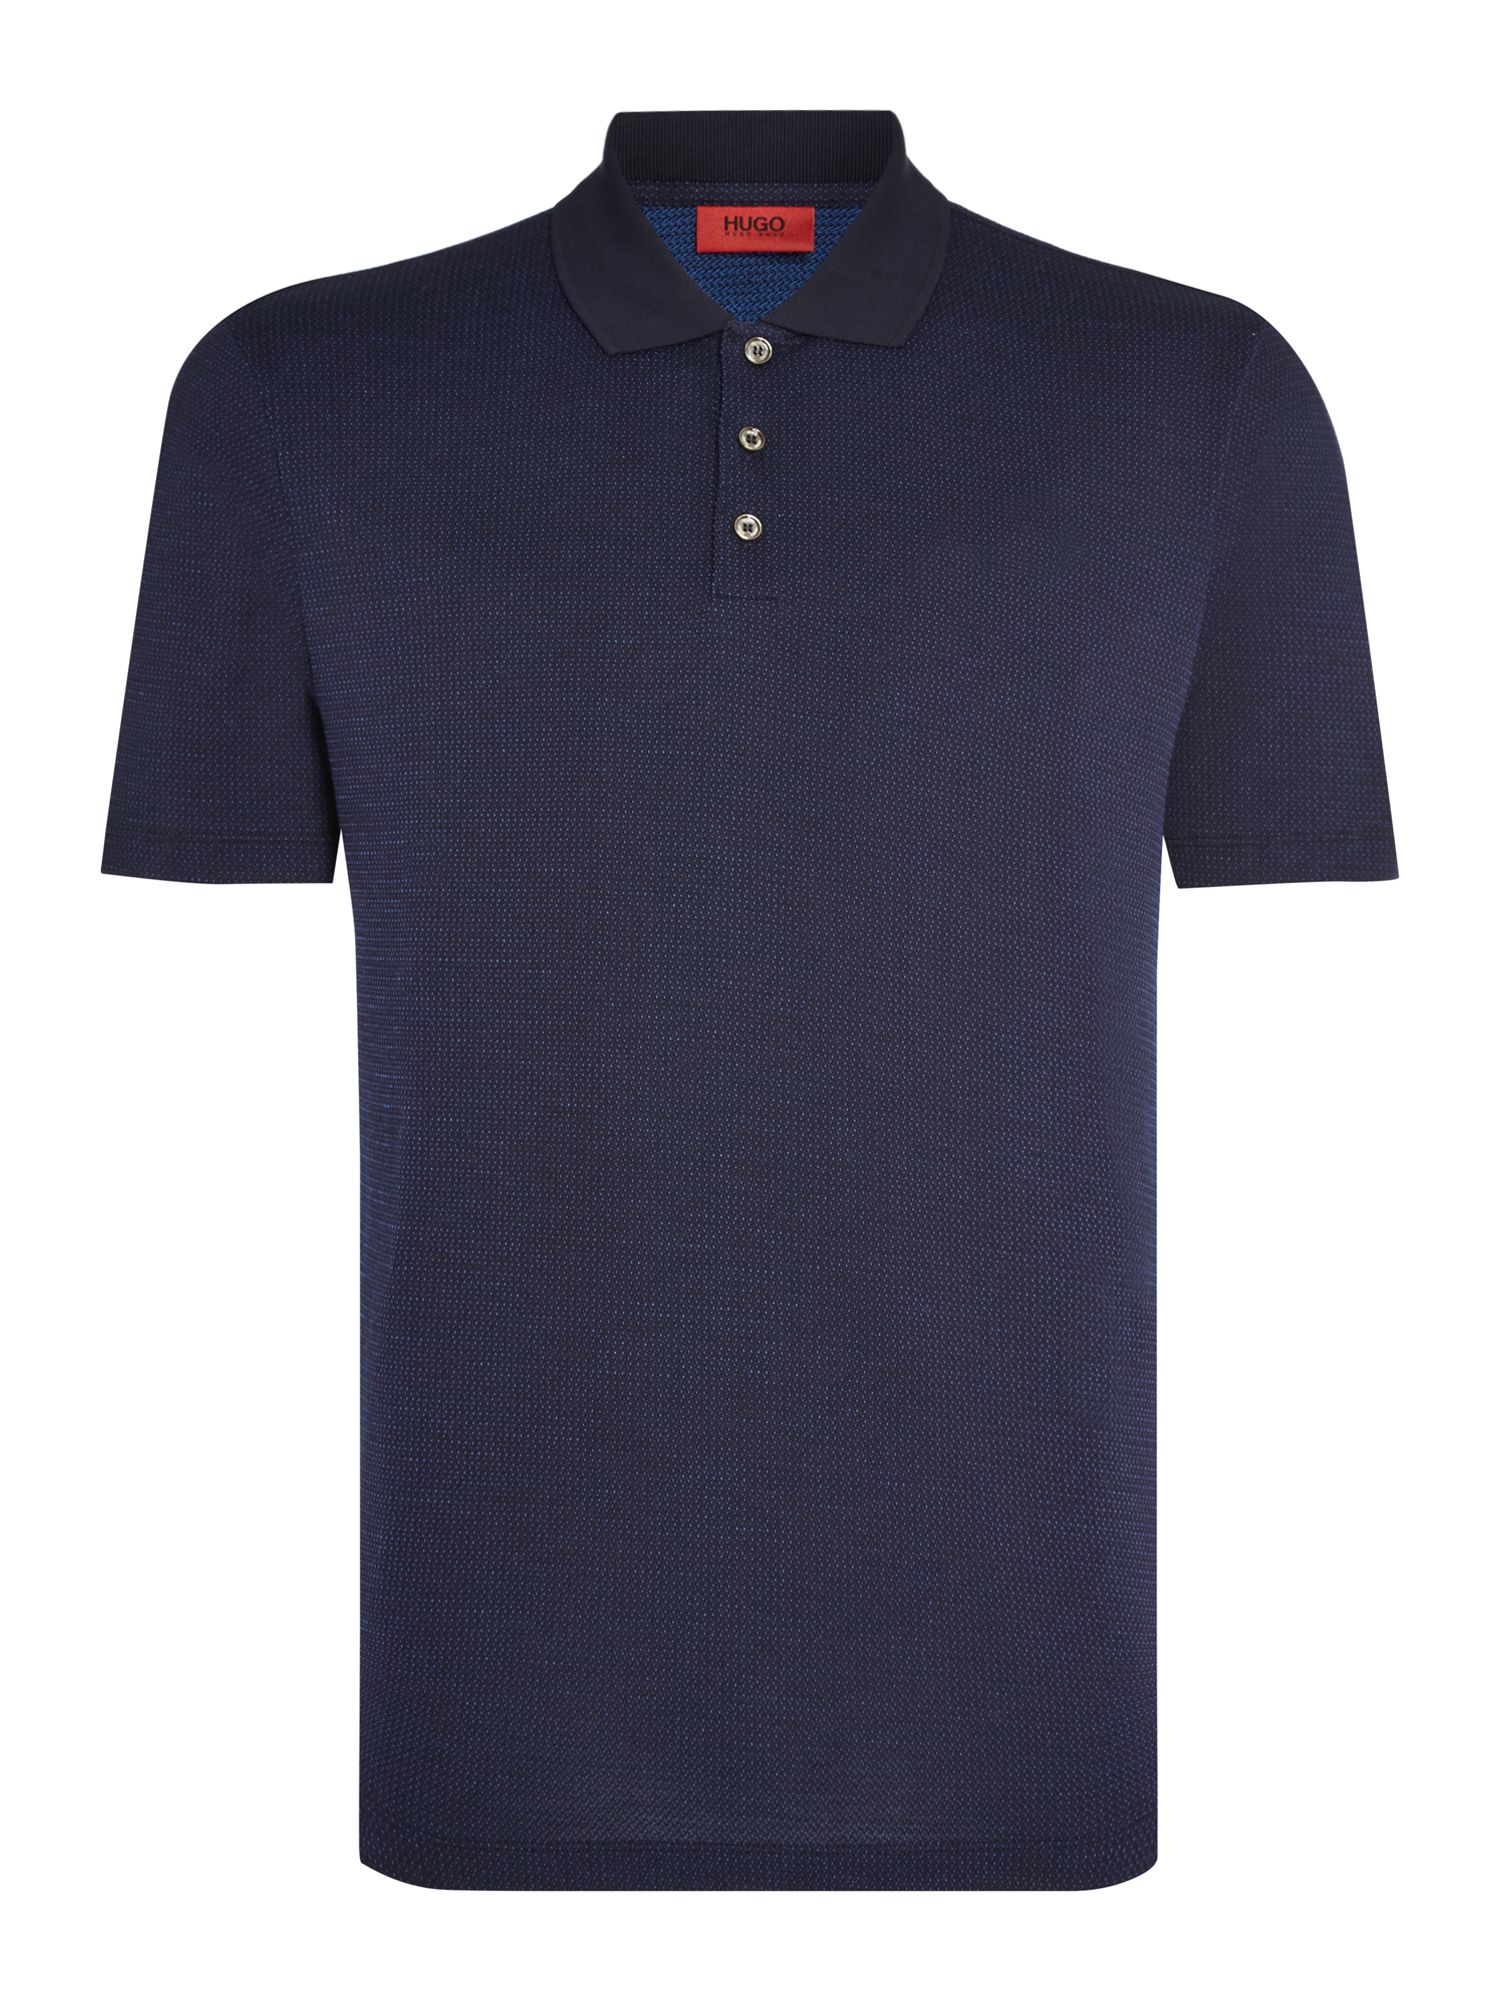 Men's Hugo Dateno Mini Jacquard Polo Shirt, Blue